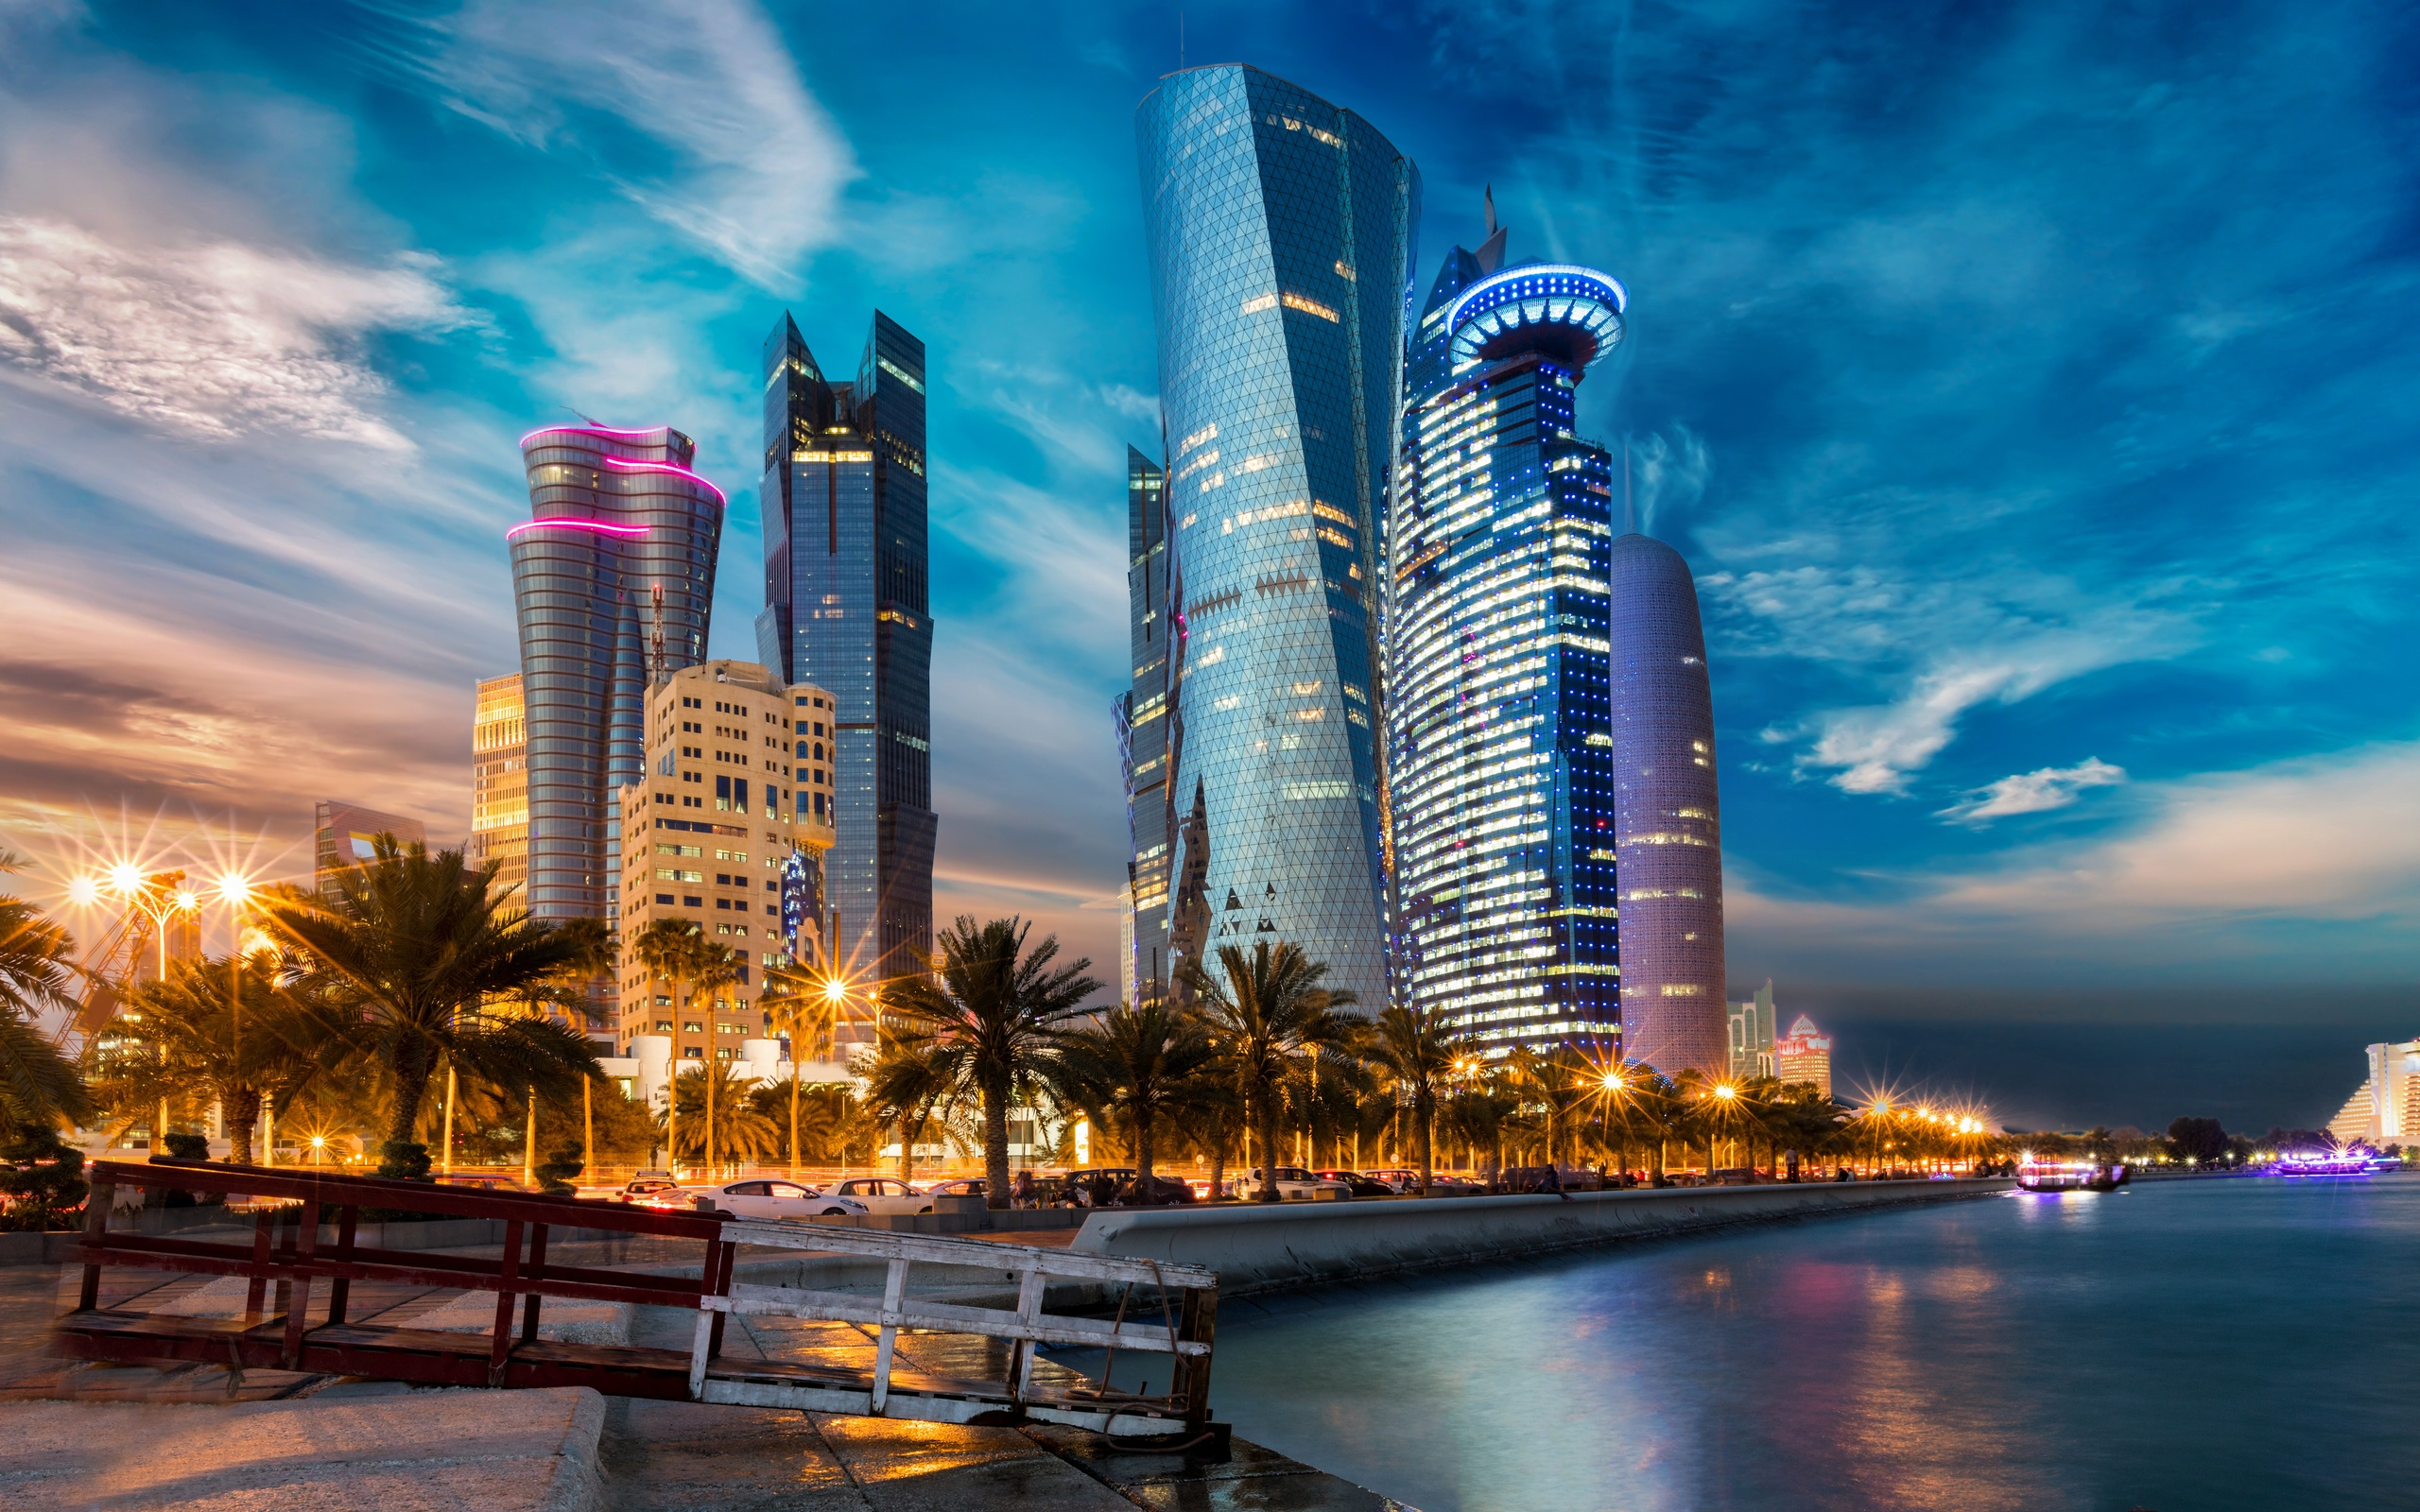 evening-houses-skyscrapers-qatar-5k-g2.jpg